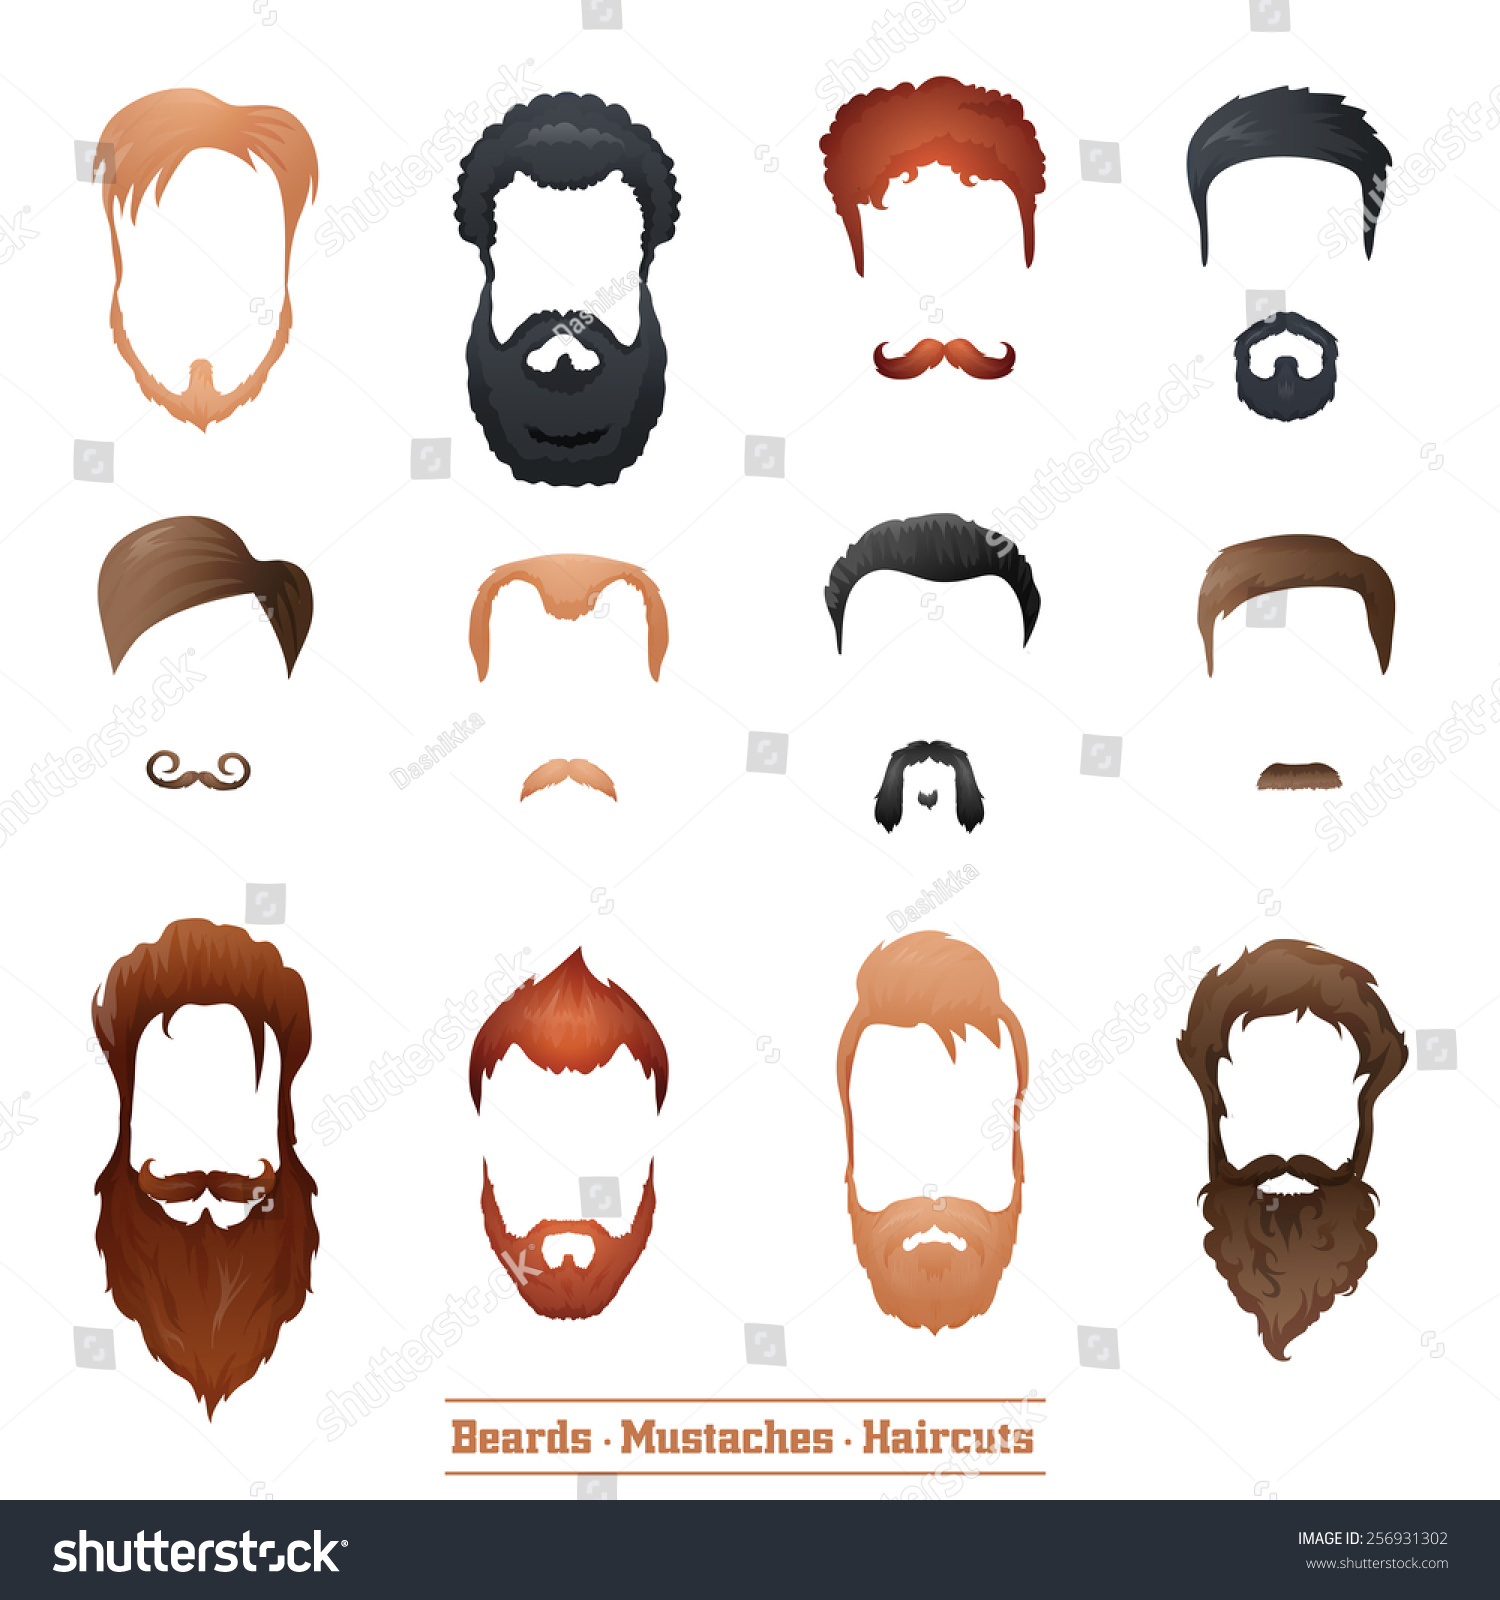 different types french beard - photo #34